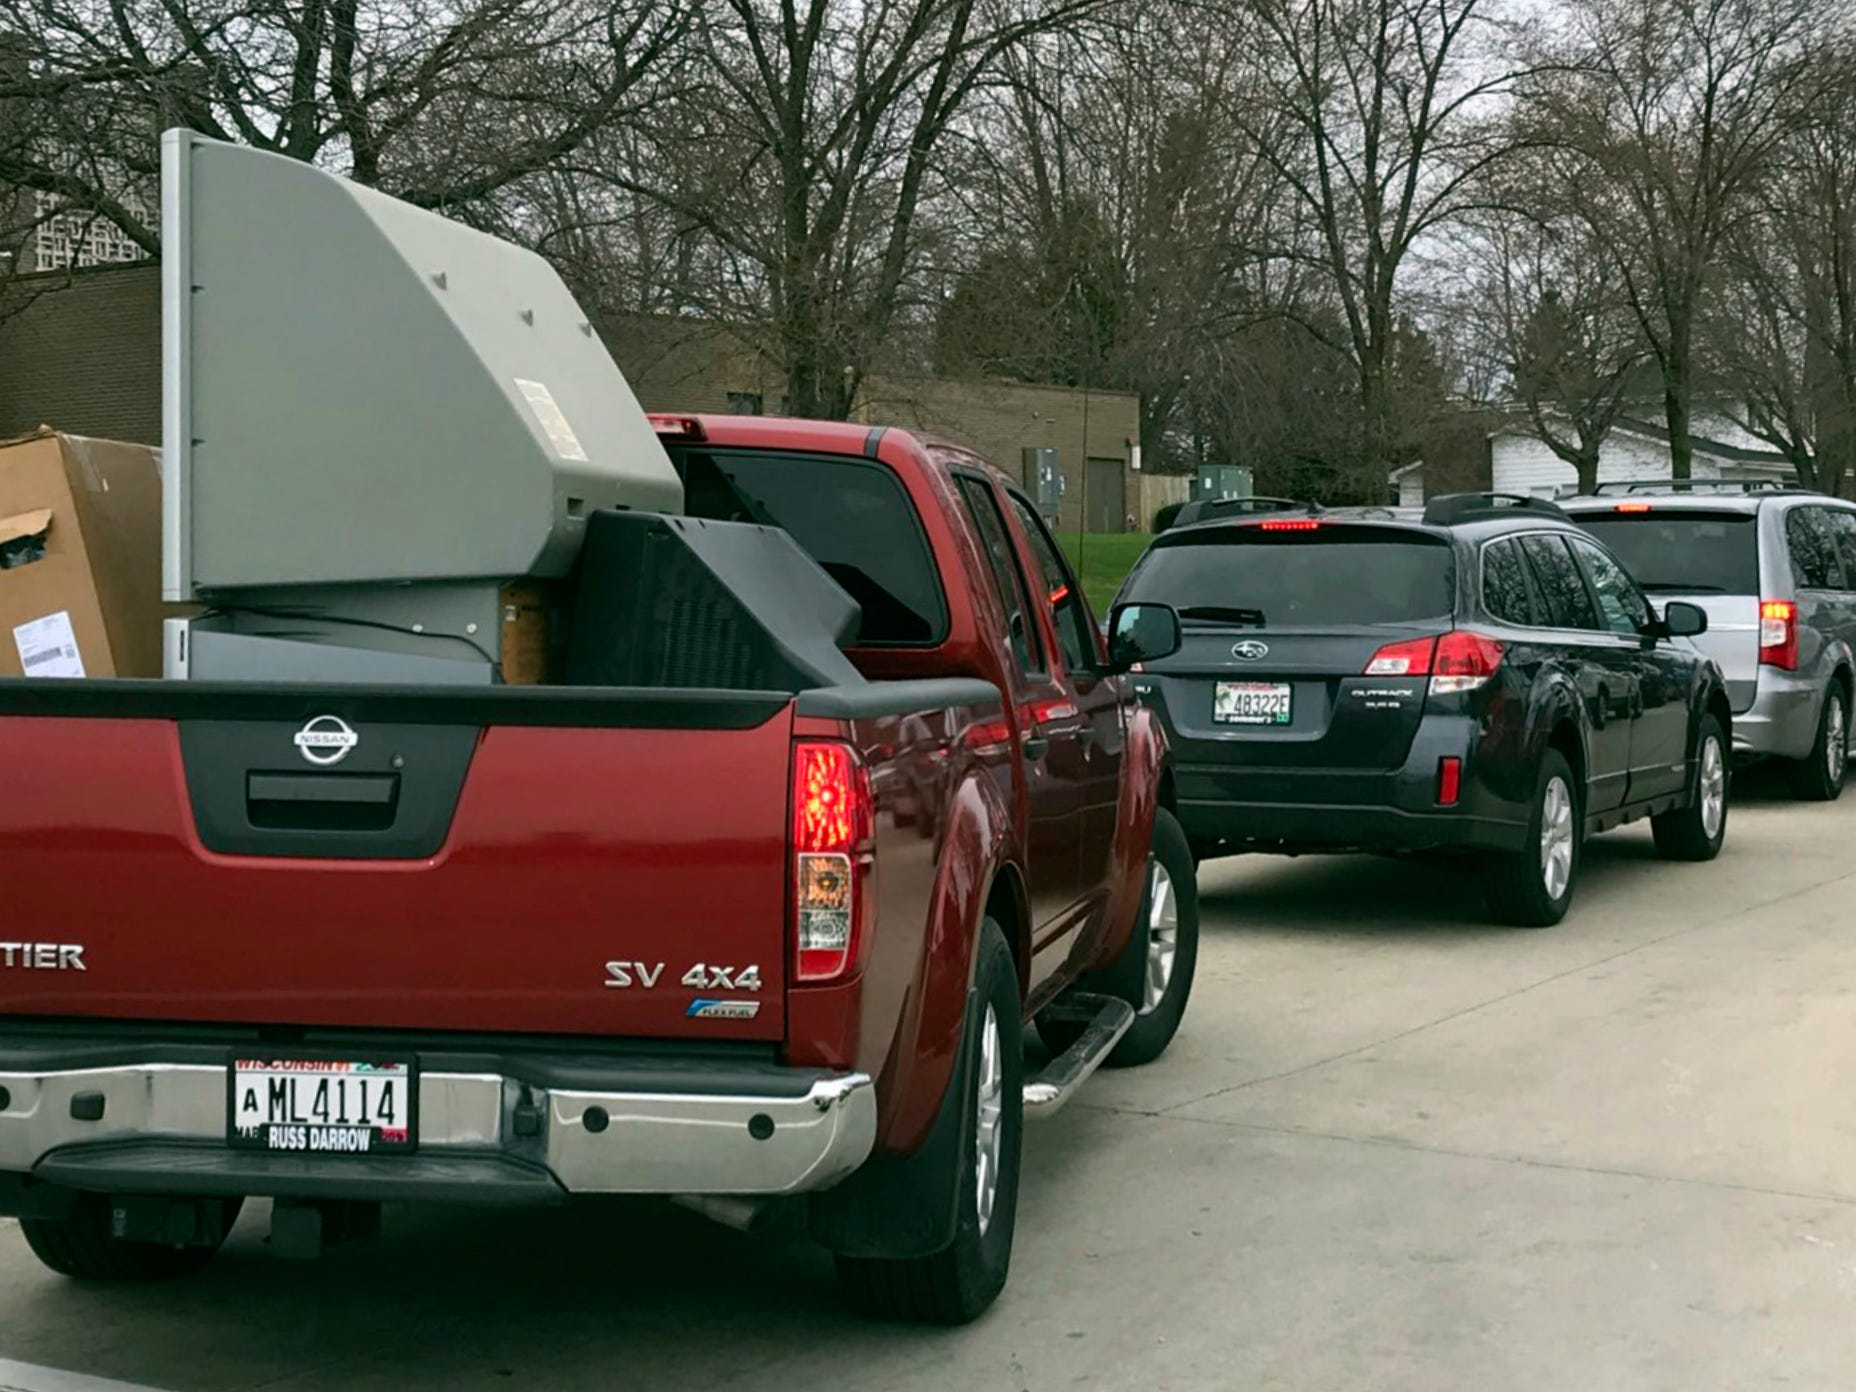 A pickup truck carries a large screen television to be recycled at a recycling event at Ebenezer United Church of Christ, Saturday, April 27, 2019, in Sheboygan, Wis.